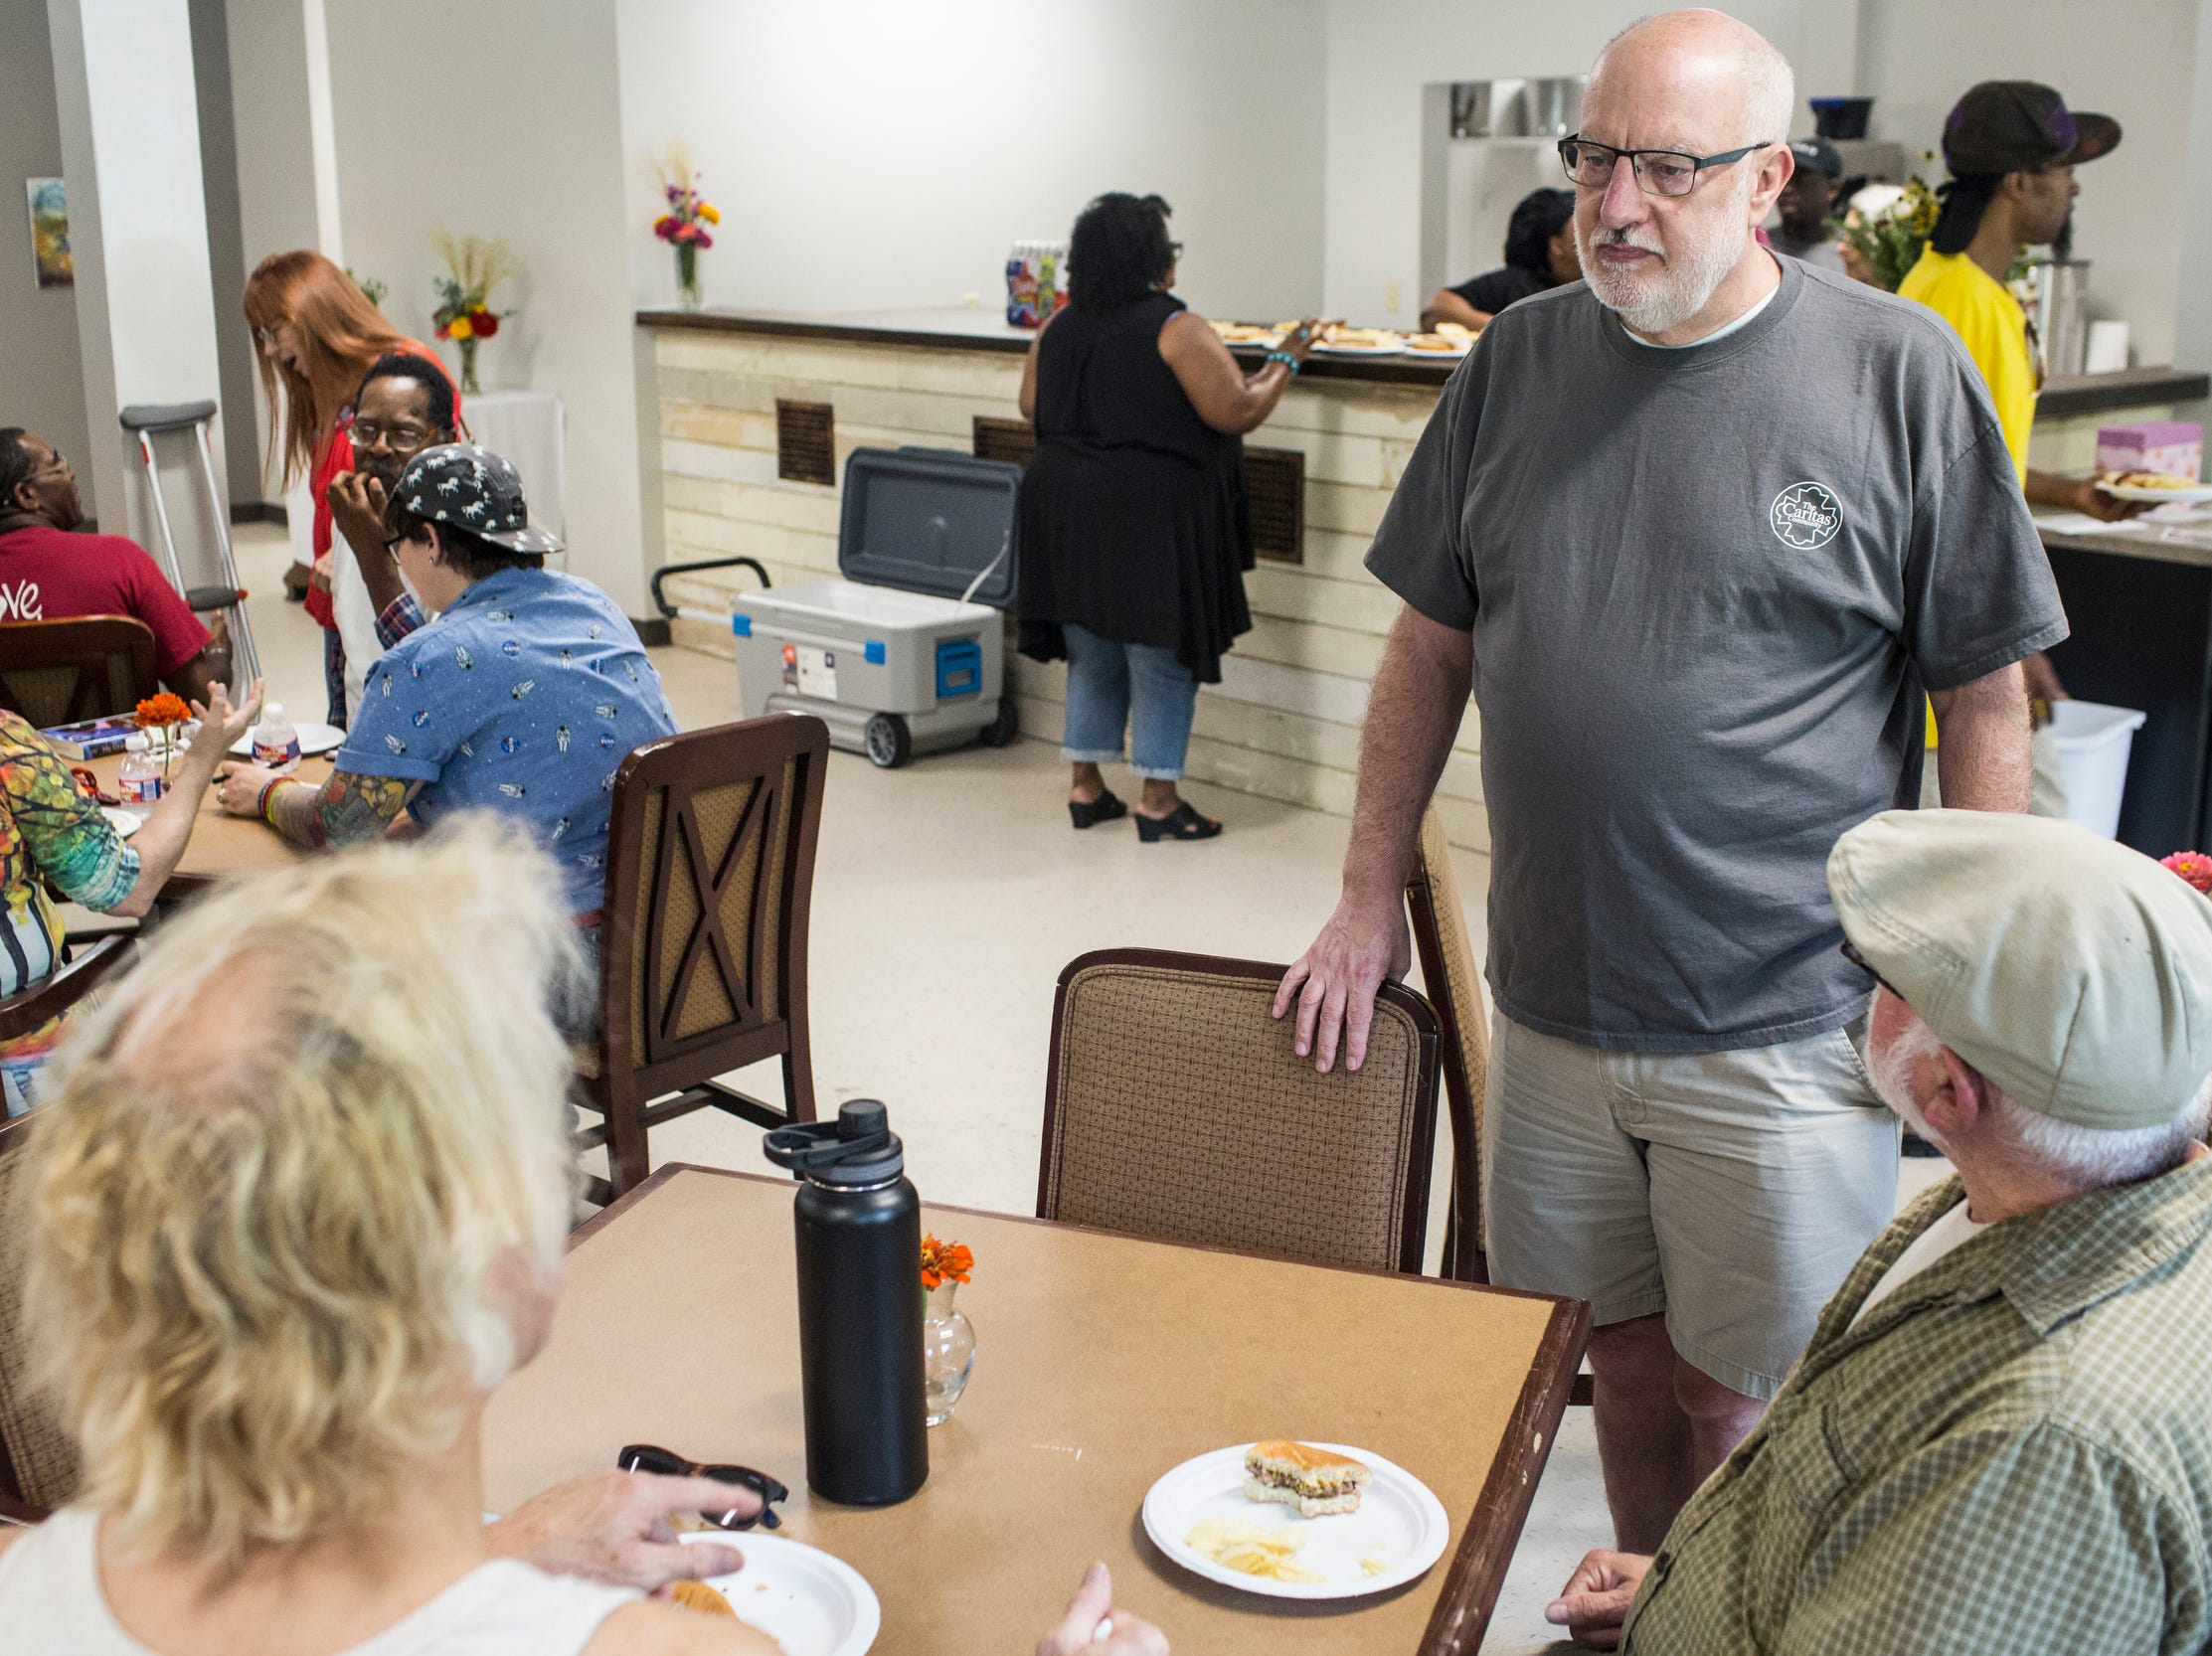 August 25 2018 - Mac Edwards, the new executive director of Caritas Village, center, talks with guests during a get together at the re-opened Caritas Village.